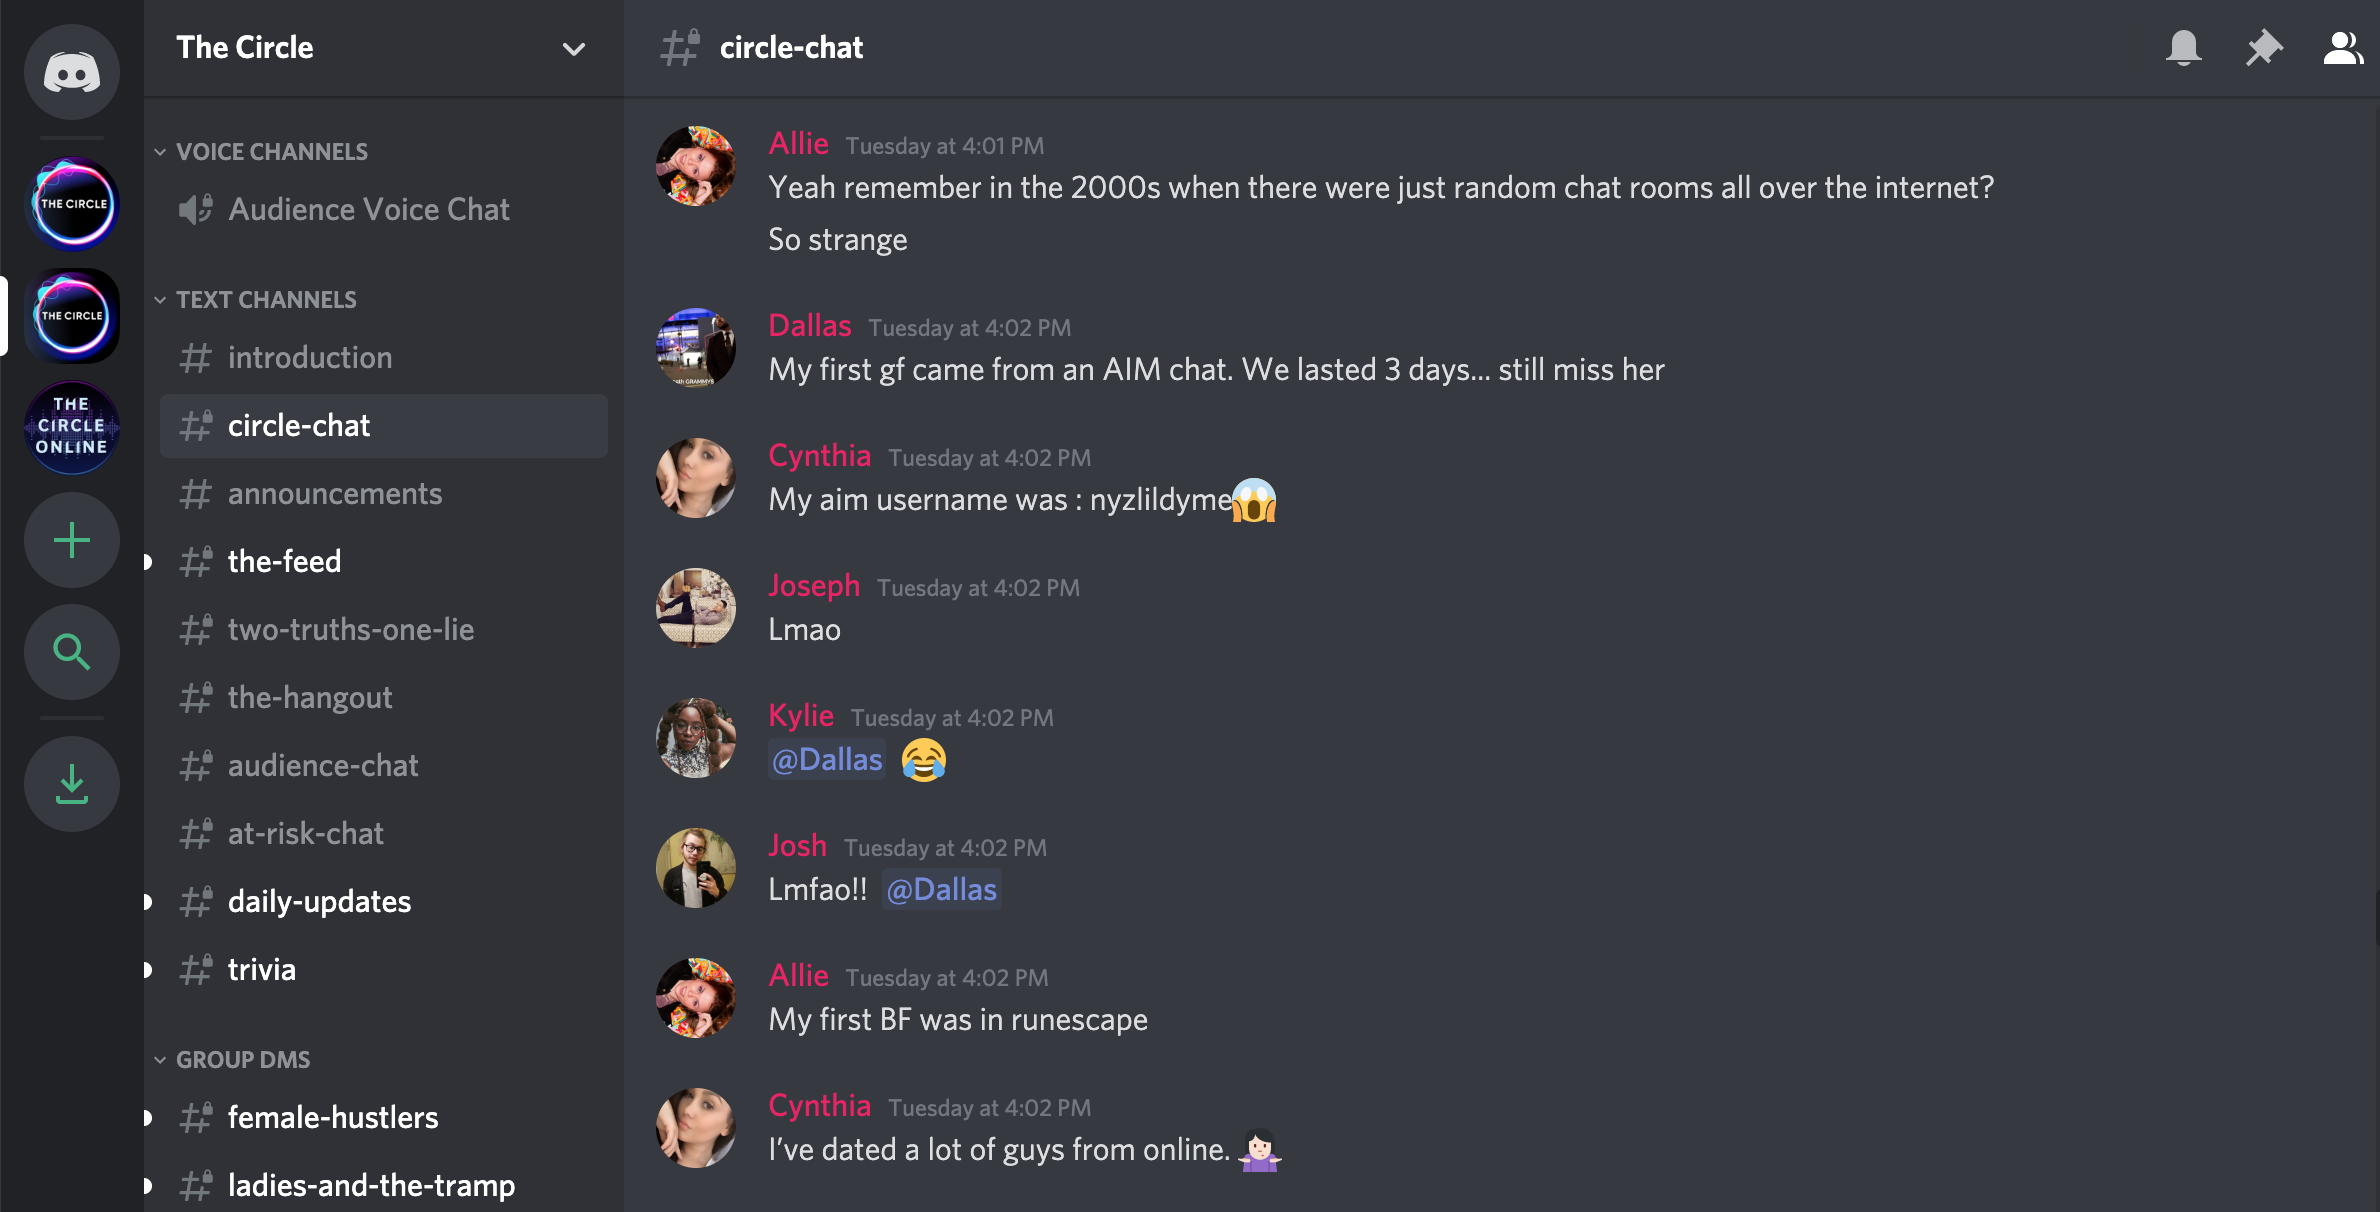 A screenshot of the #circle-chat on  The Circle  server